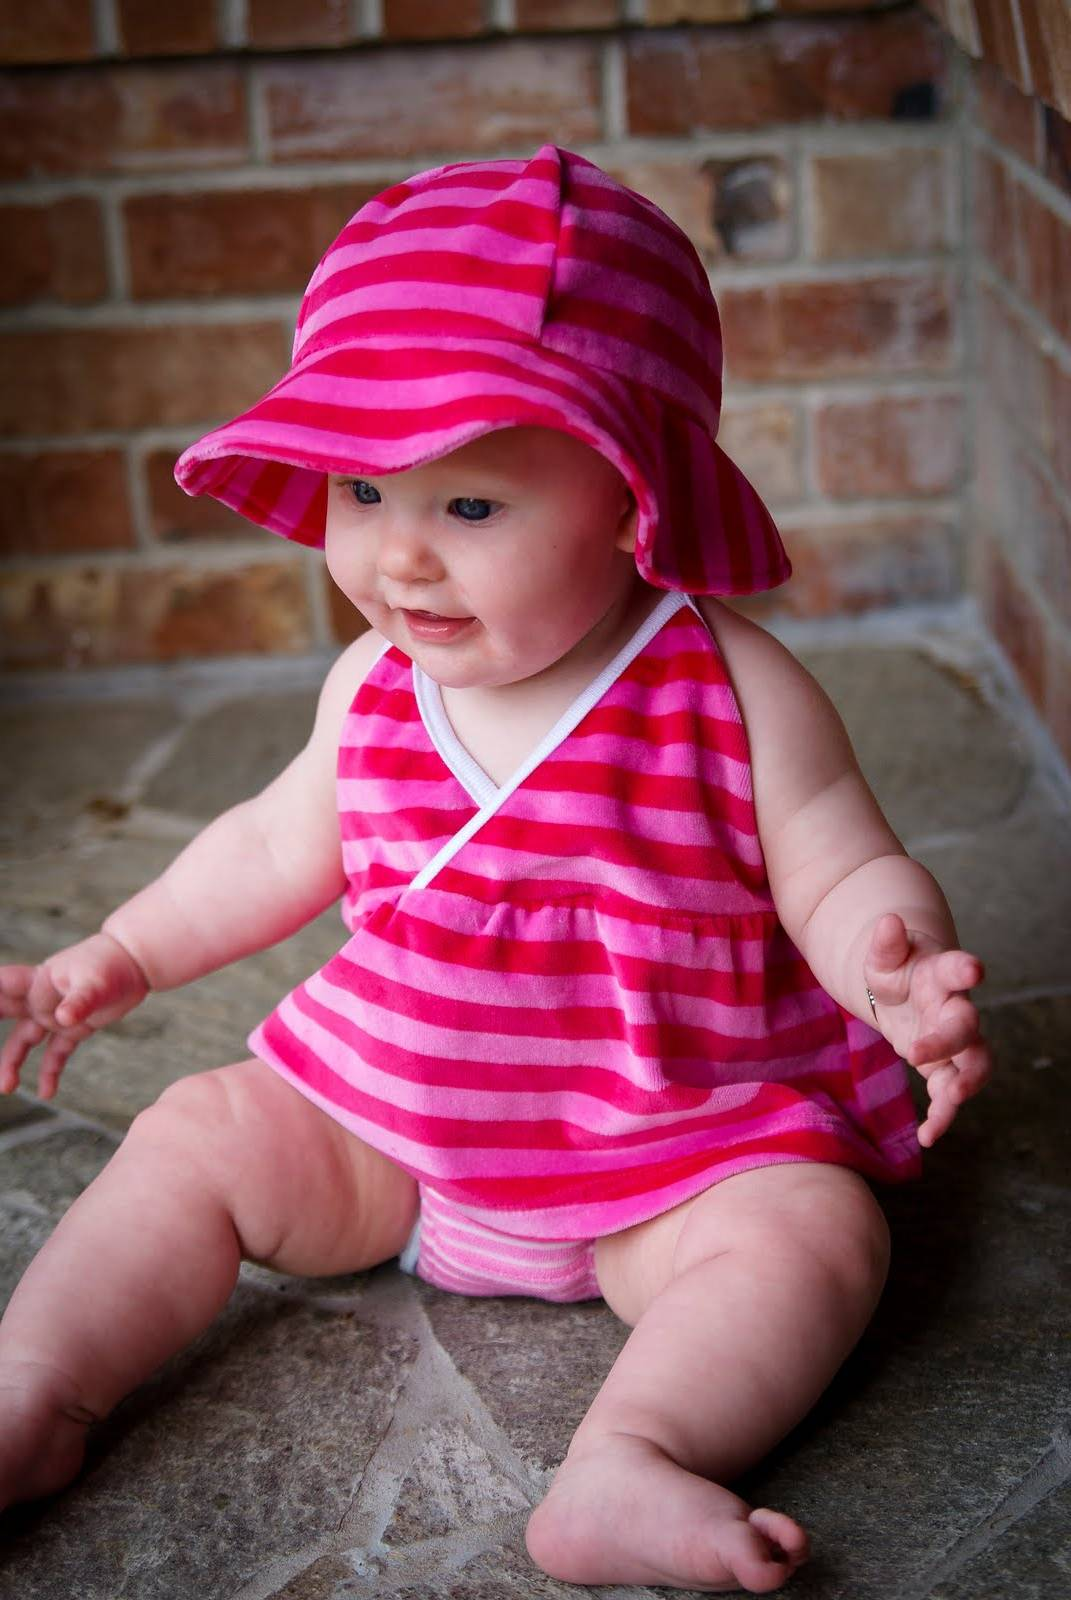 Cute Baby Girl Wearing Pink Dress And Blue Eyes Wallpaper